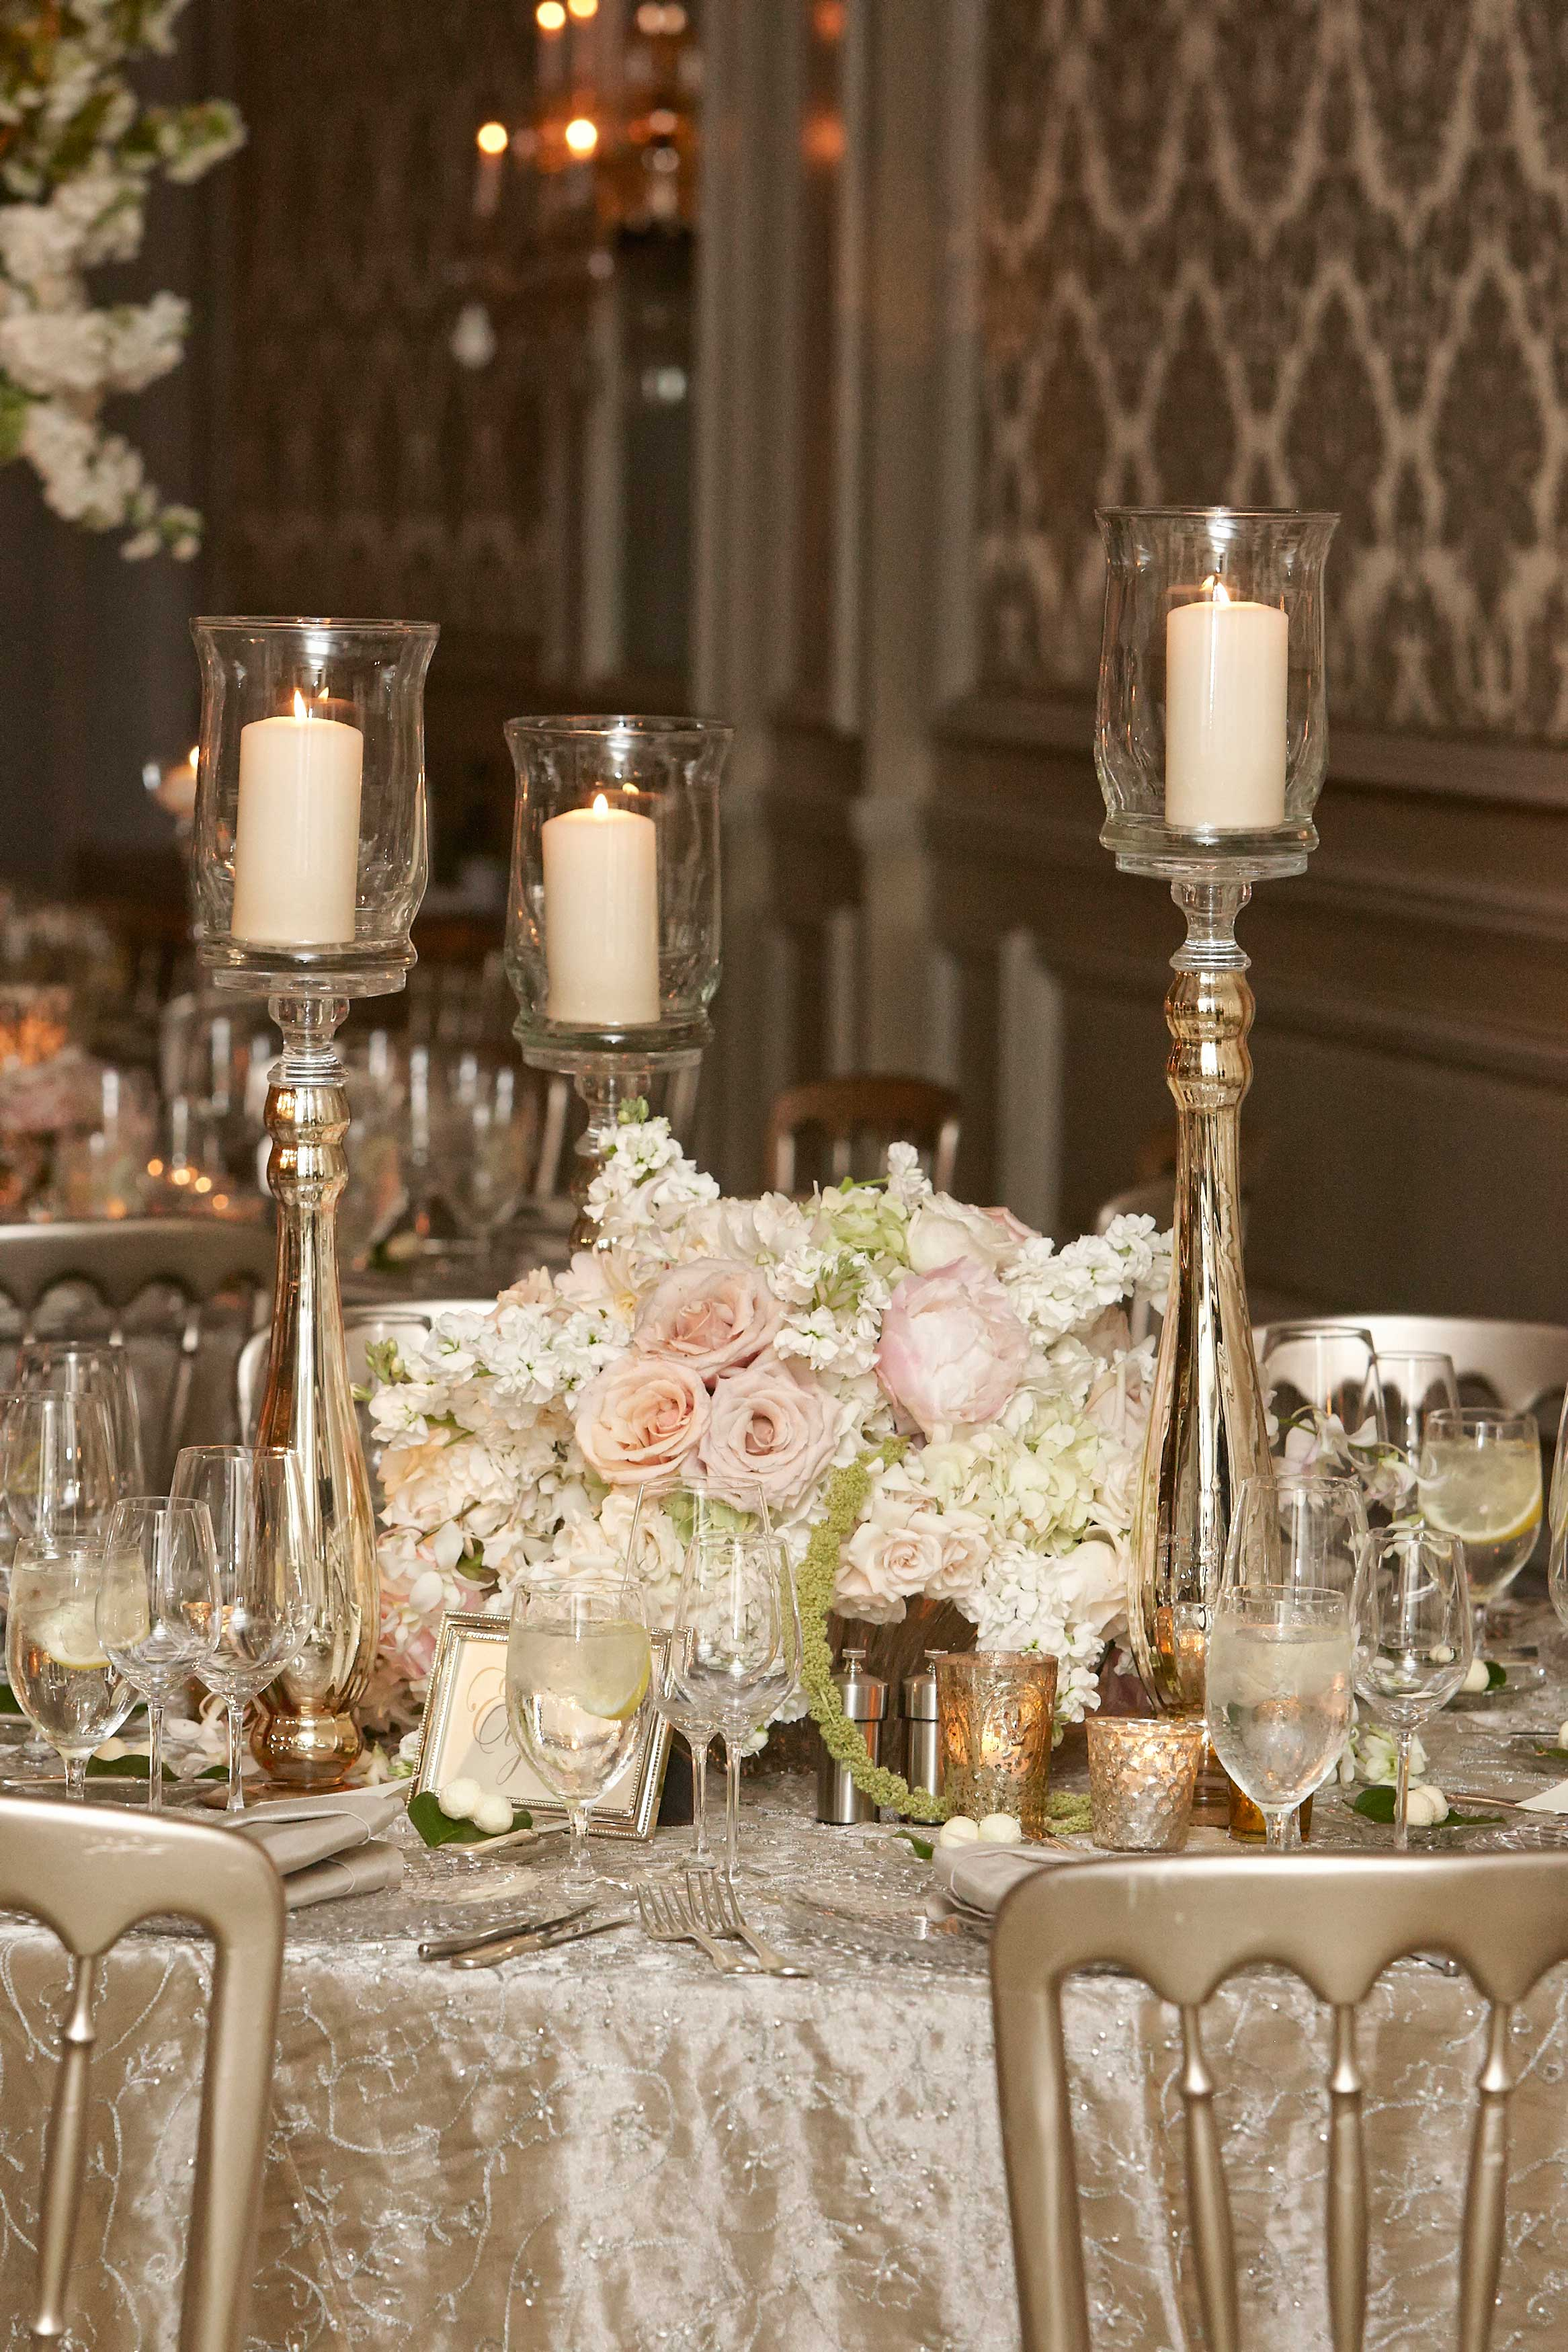 5 Must-Haves for Your Vintage-Style Wedding